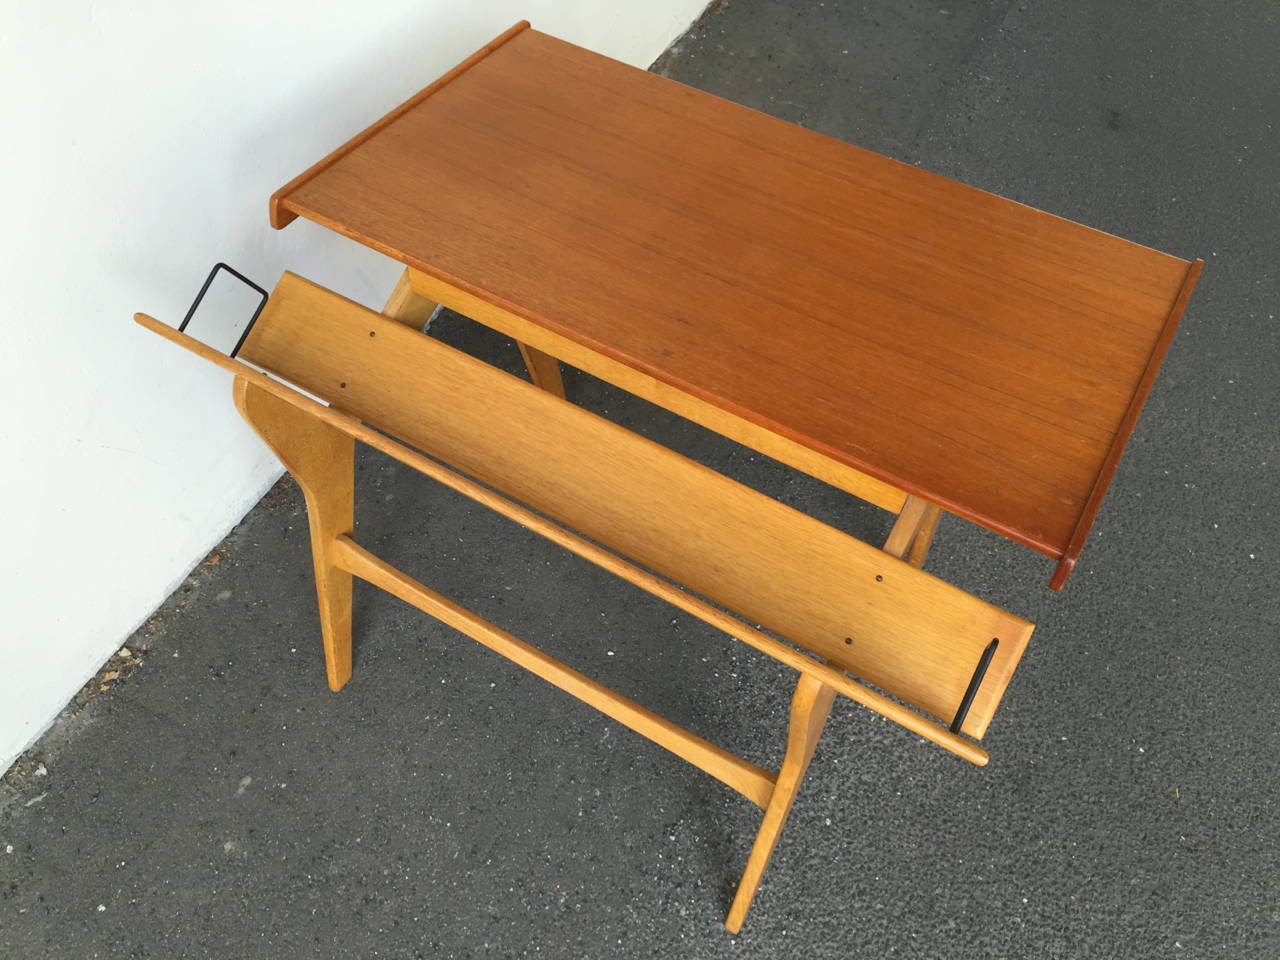 20th Century Small Oak and Teak Wood Desk with Bookshelf Attributed to Hans Wegner For Sale